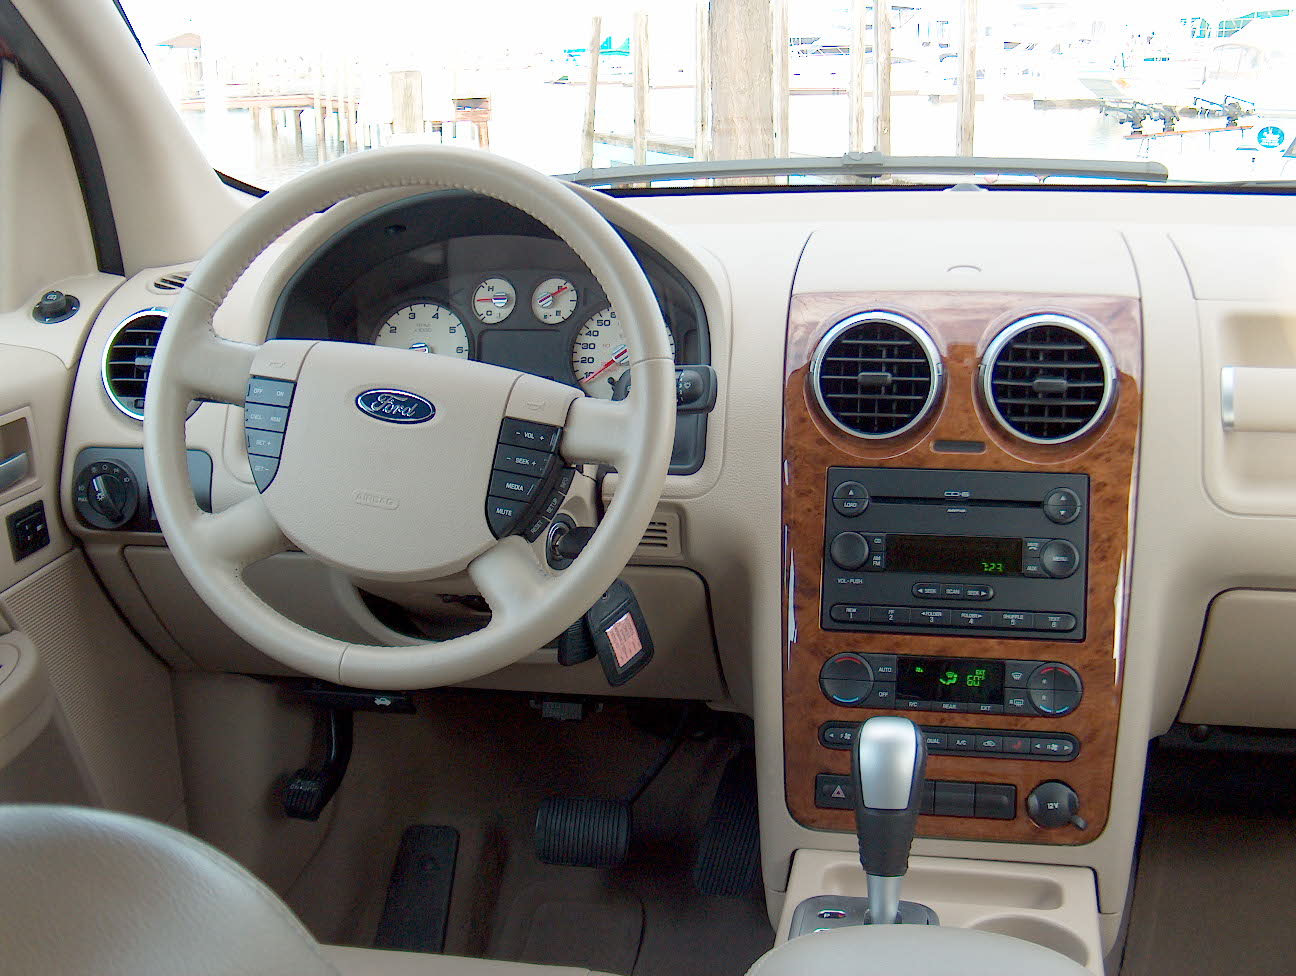 Ford Freestyle 2005 #11